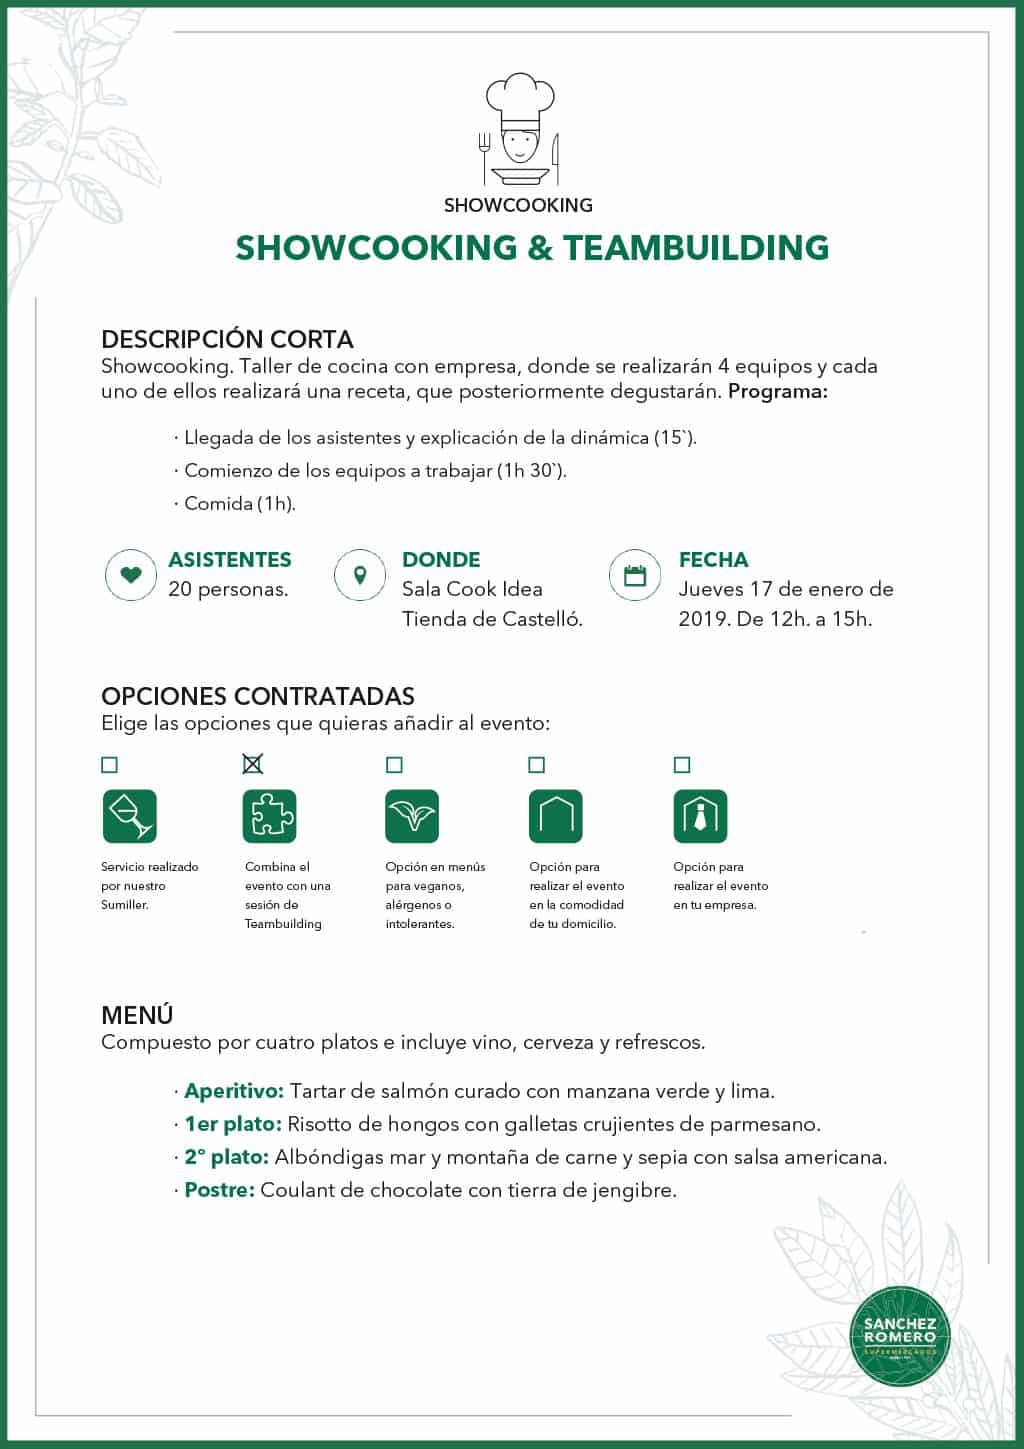 Ejemplo ShowCooking Teambuilding